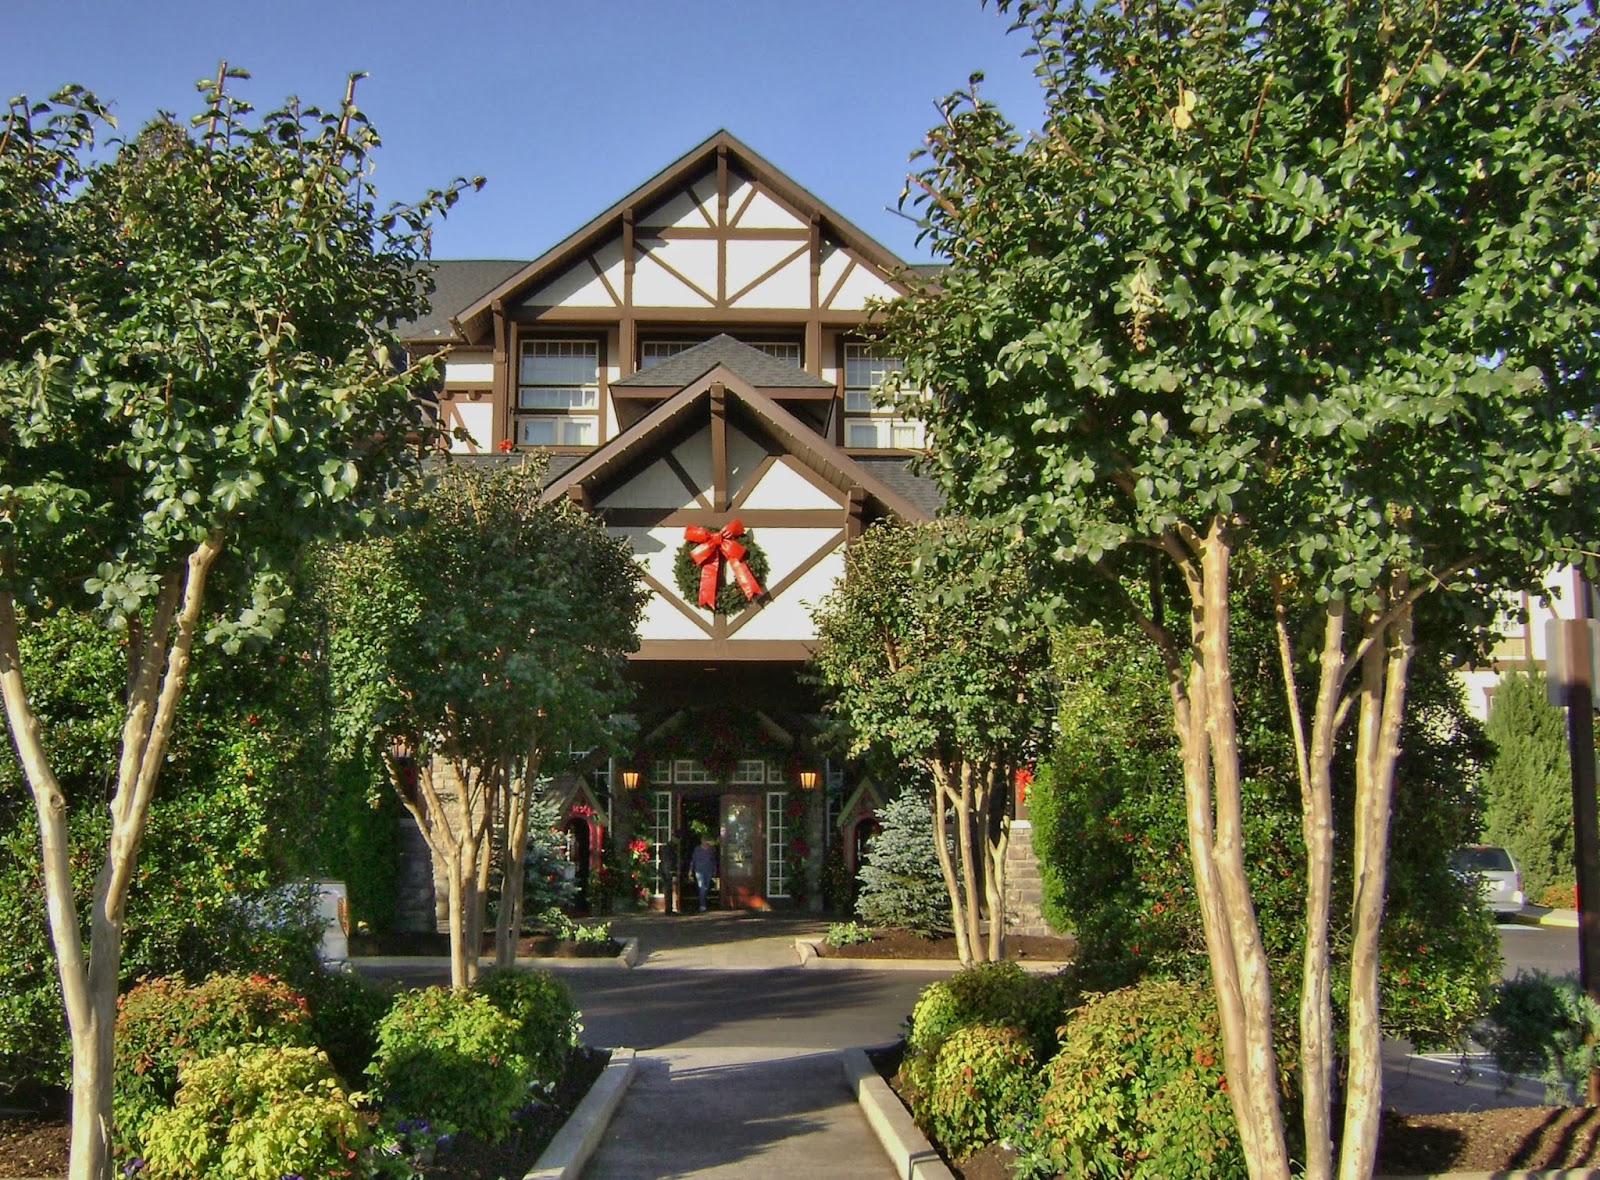 Christmas Inn In Pigeon Forge.Mimi Mine The Inn At Christmas Place Celebrates Christmas